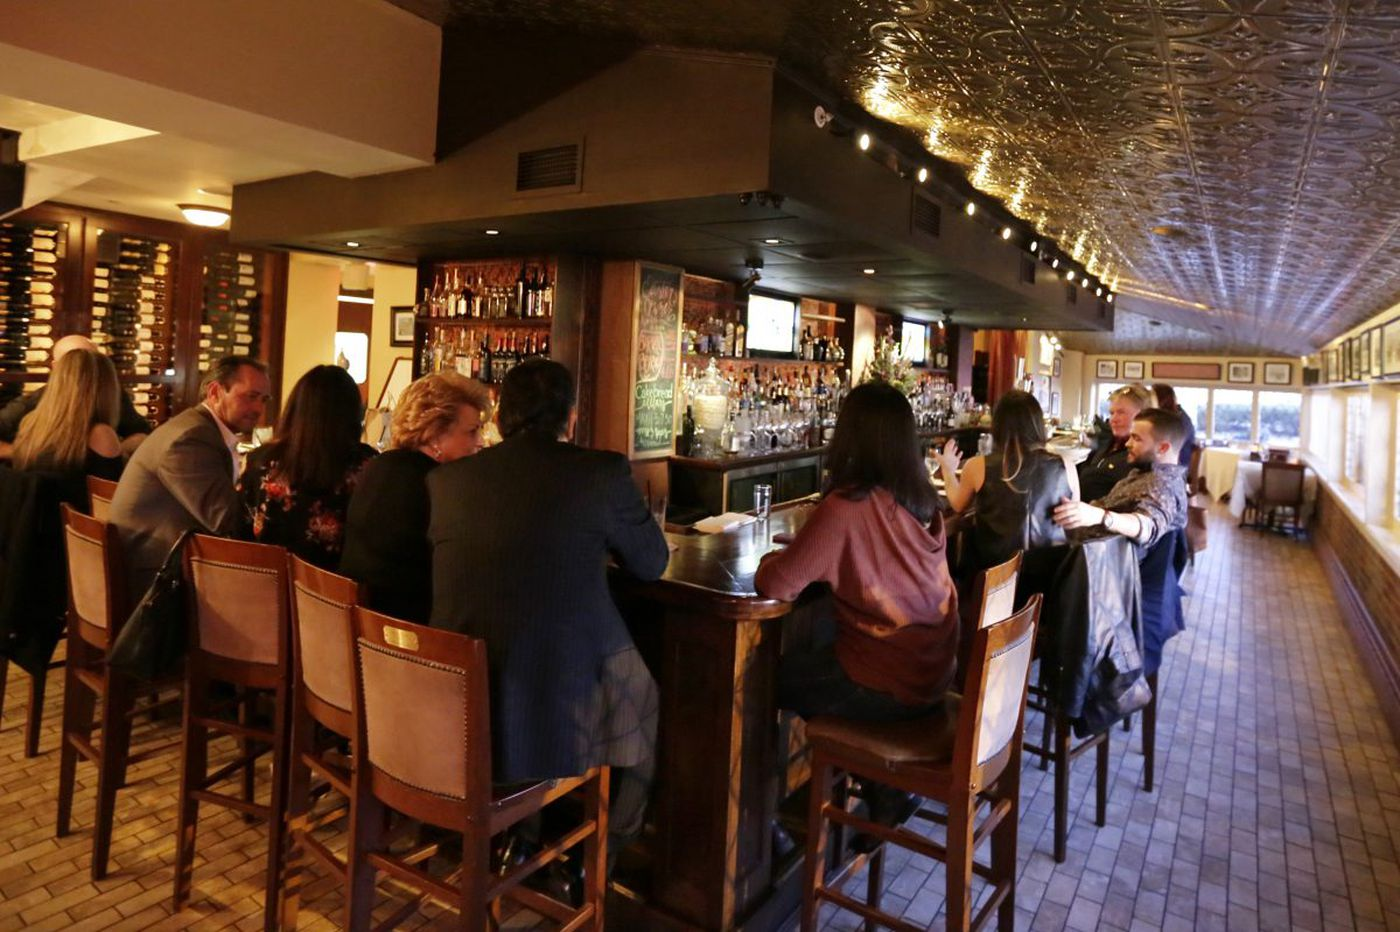 Where to spend happy hour at the Shore